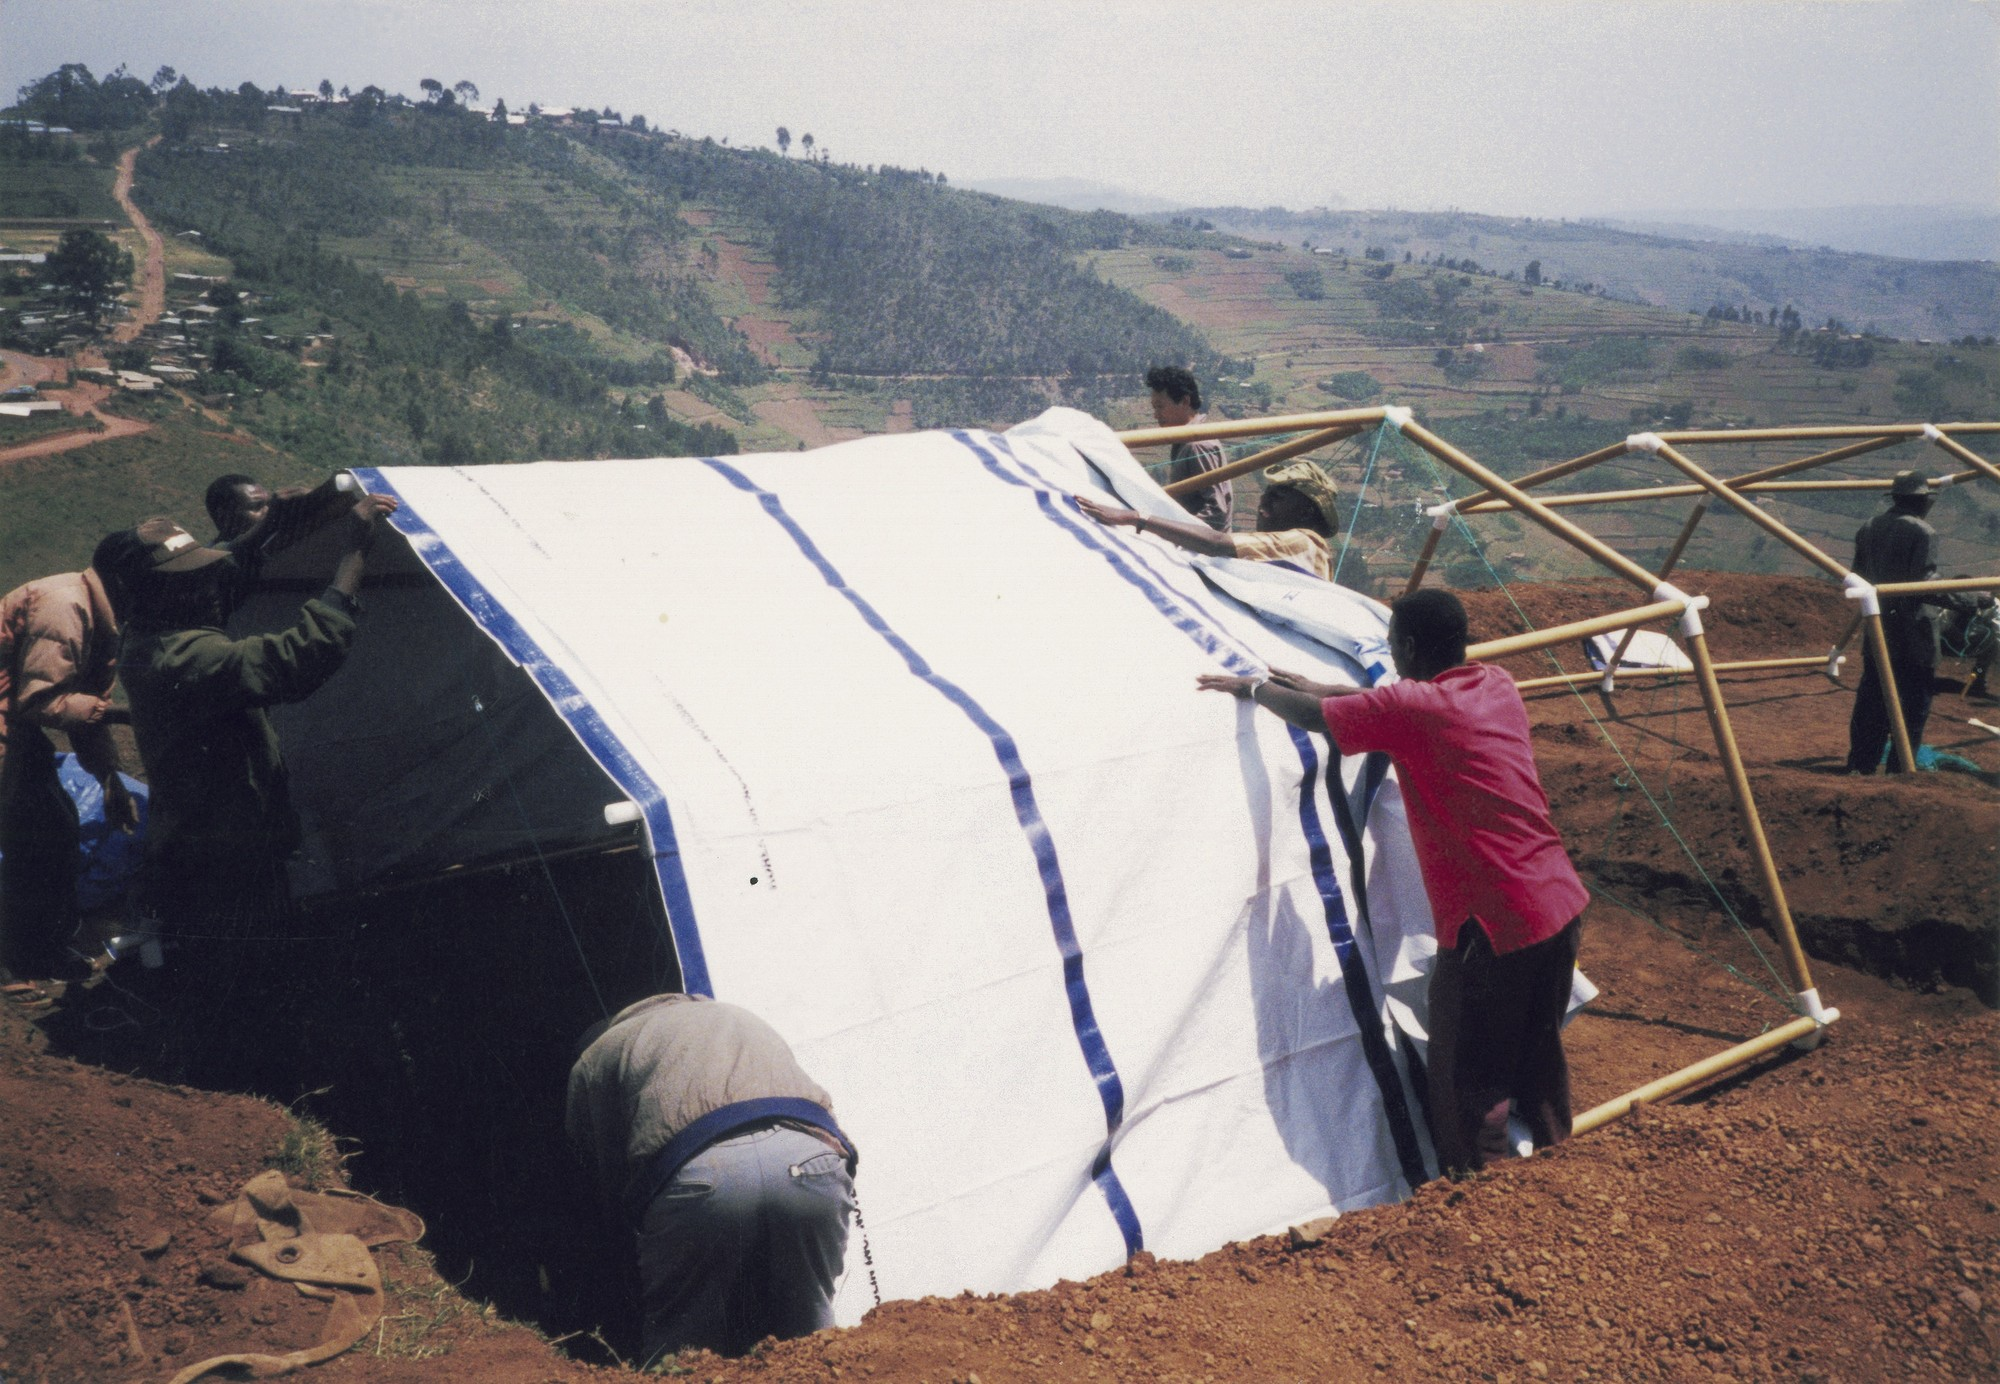 Paper Emergency Shelter for UNHCR. Image Courtesy of Shigeru Ban Architects